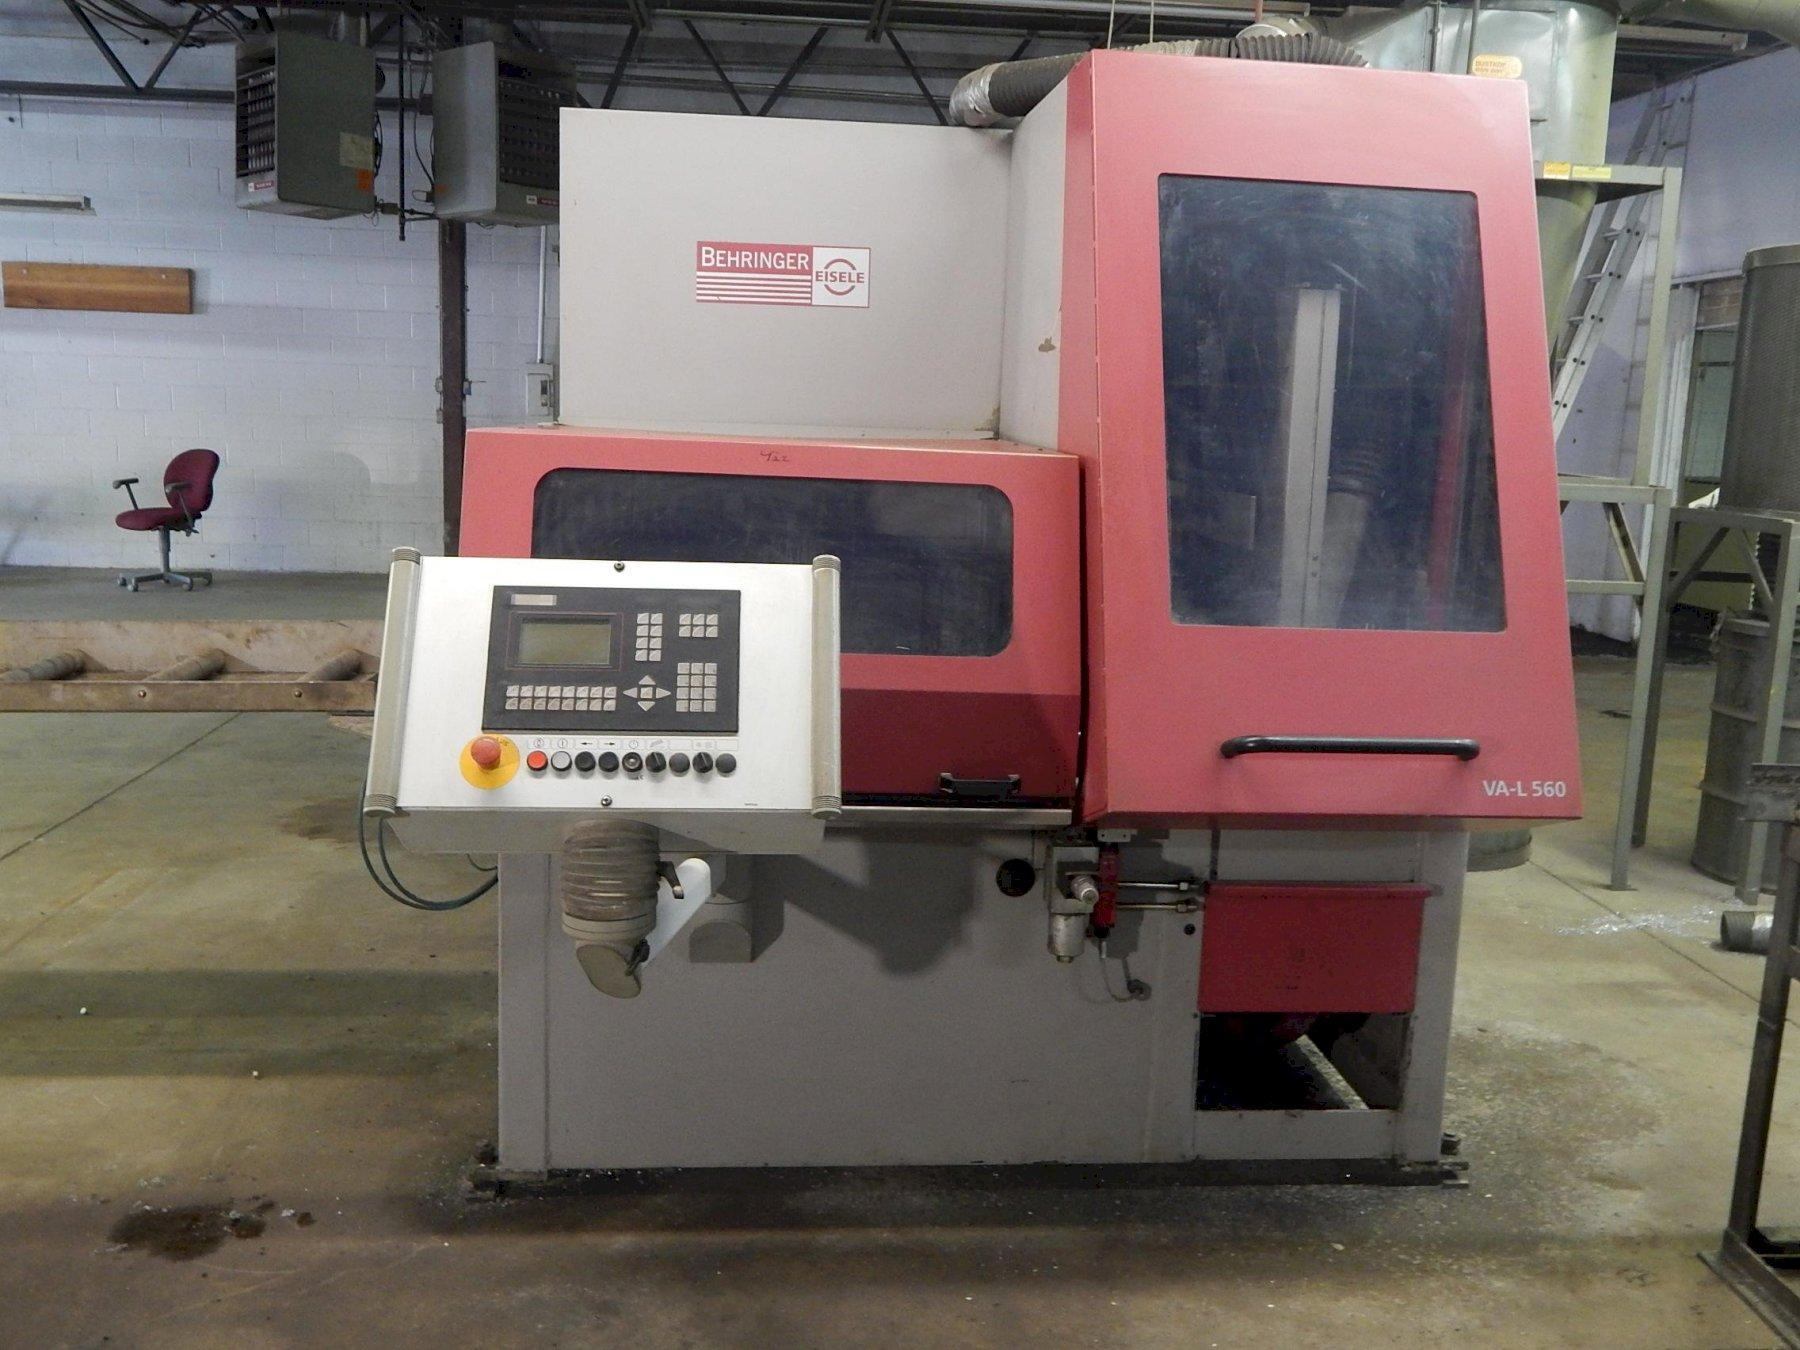 USED BEHRINGER / EISELE MODEL VAL-560 NC-H FULLY AUTOMATIC NON-FERROUS CIRCULAR SAW, Stock # 10831